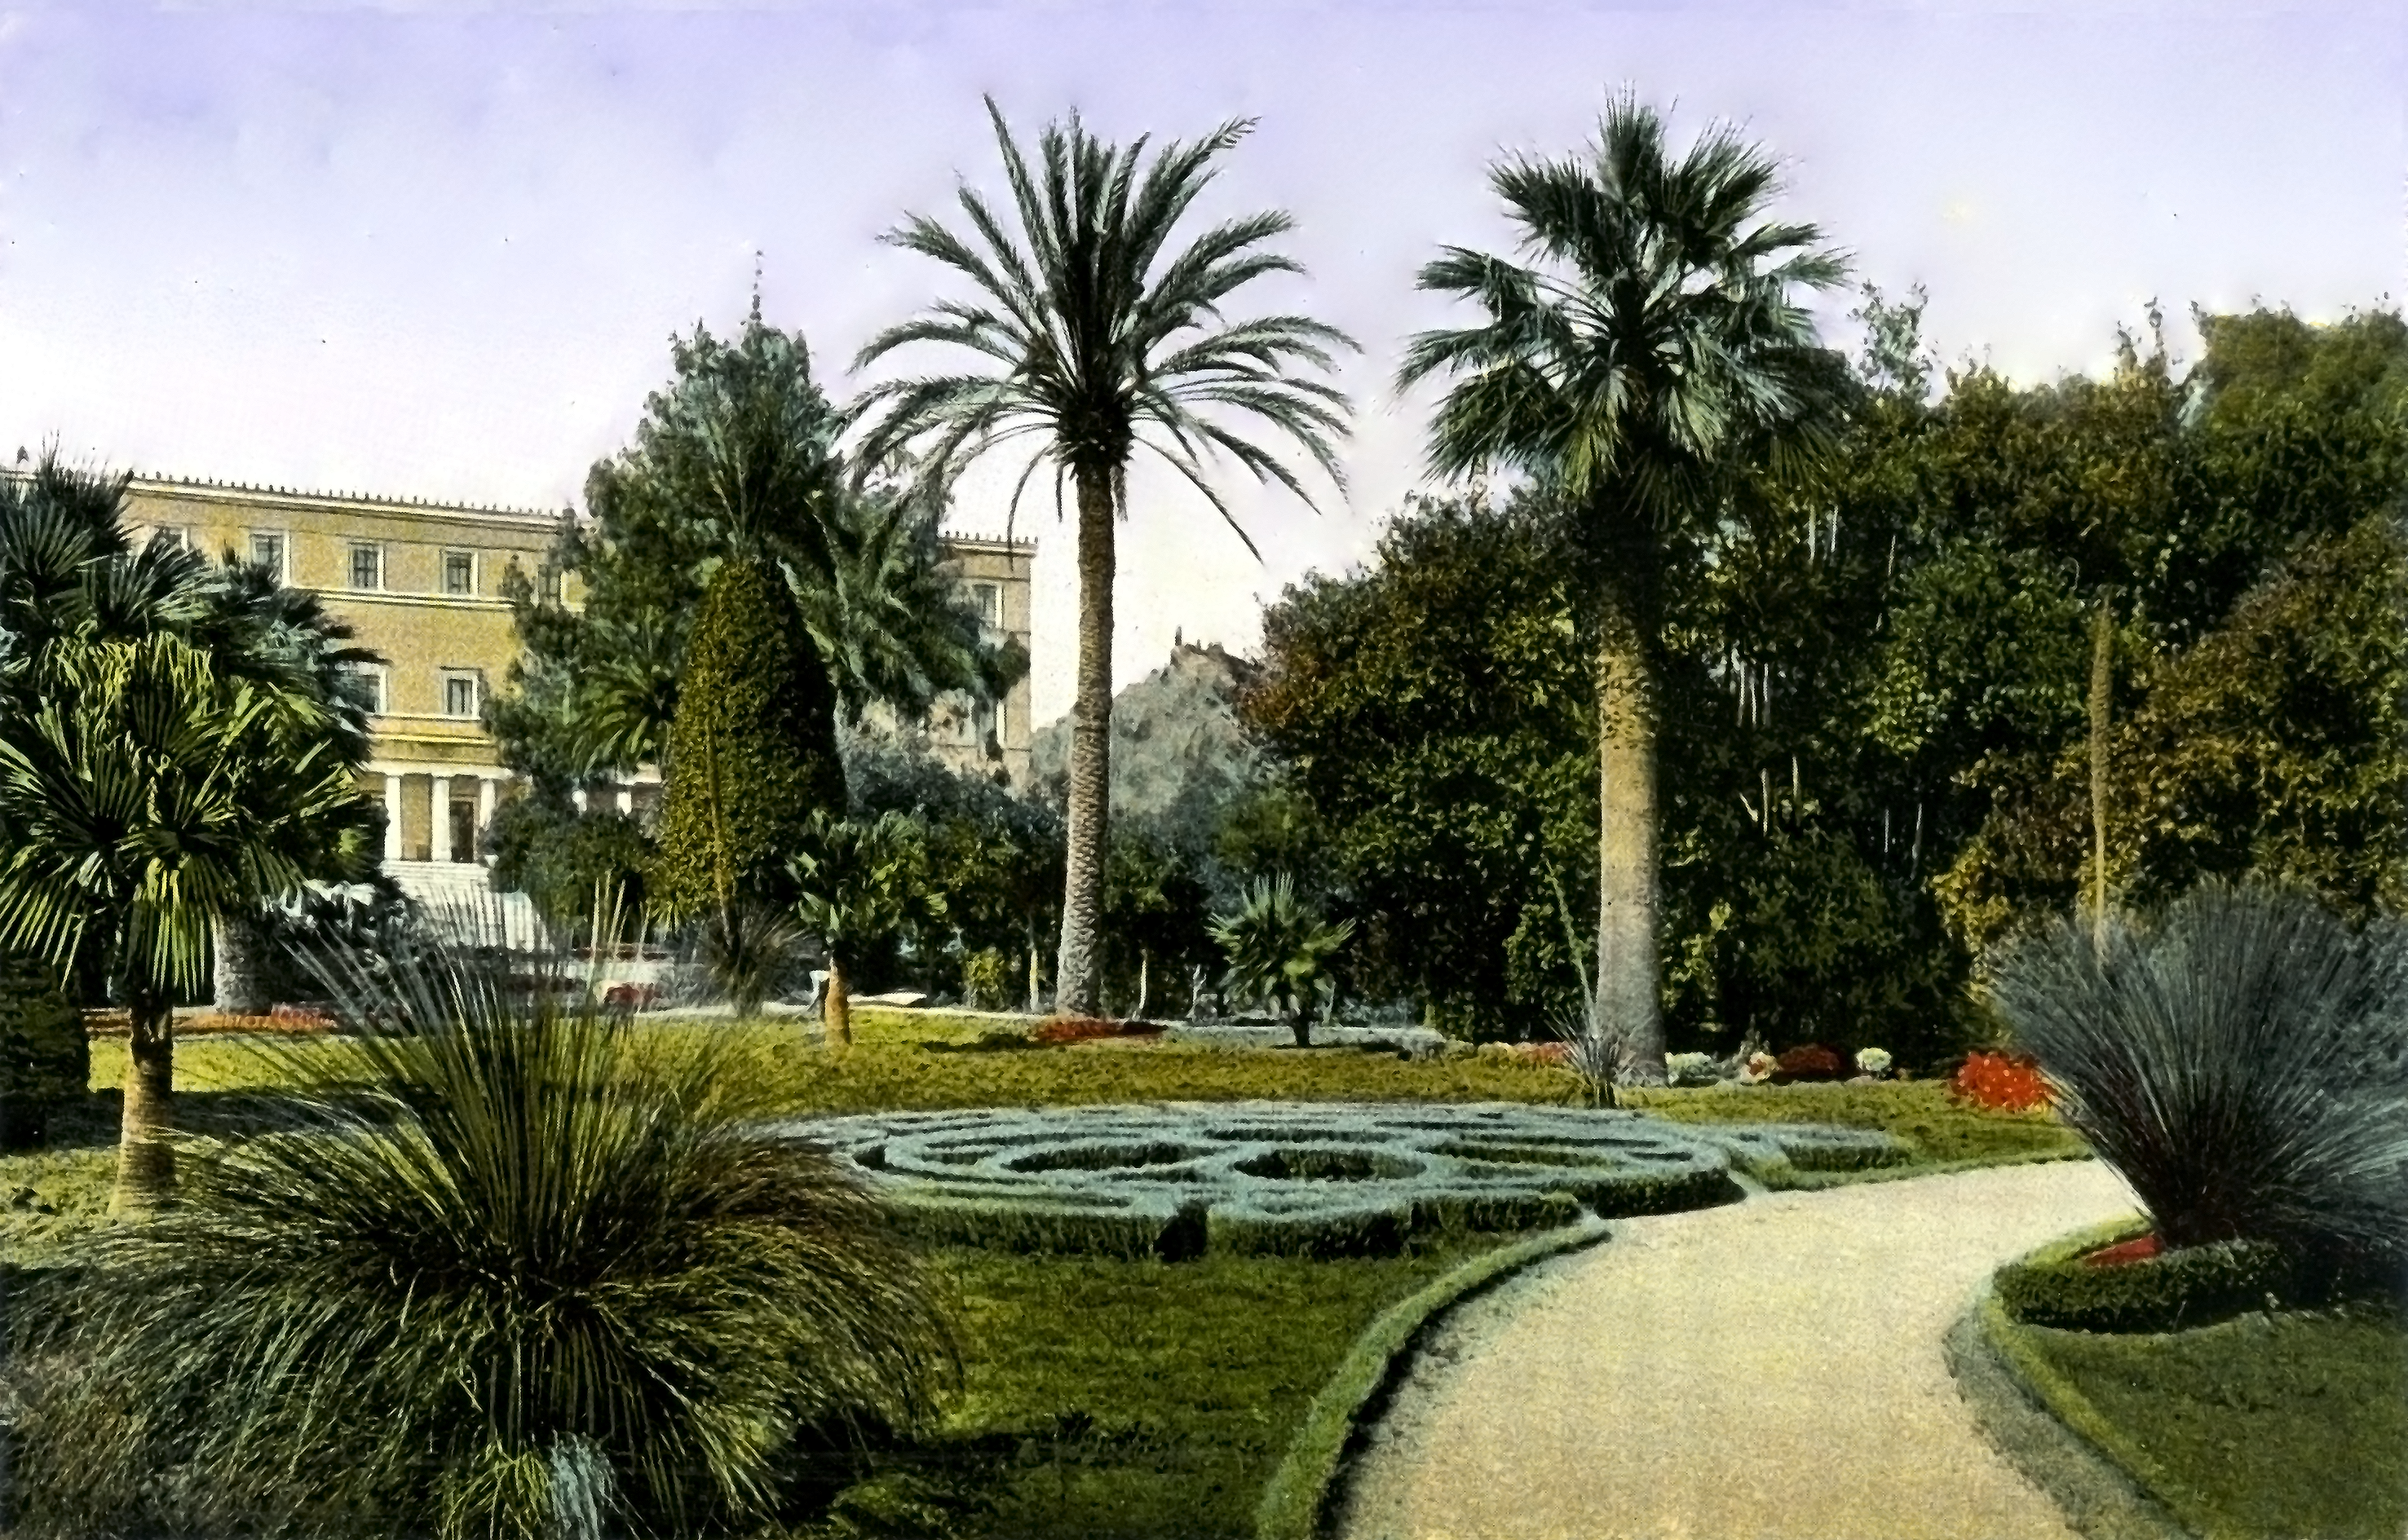 File:Royal Gardens 1905.png - Wikipedia